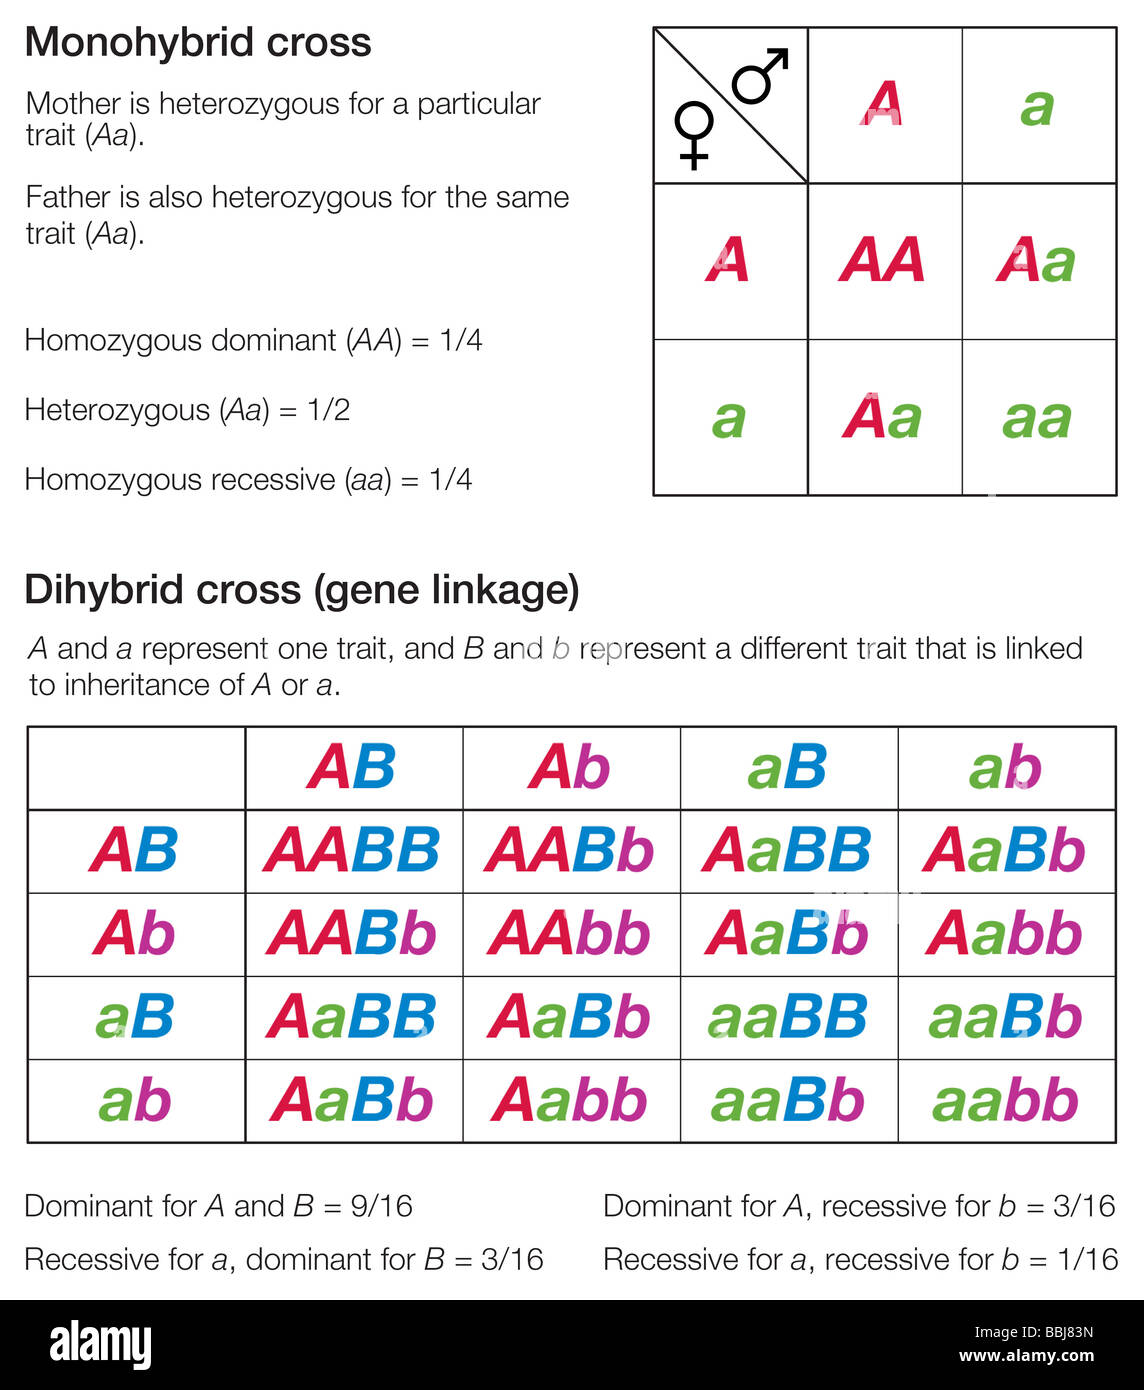 Worksheet Genetic Problems Dihybrid Crosses Answers